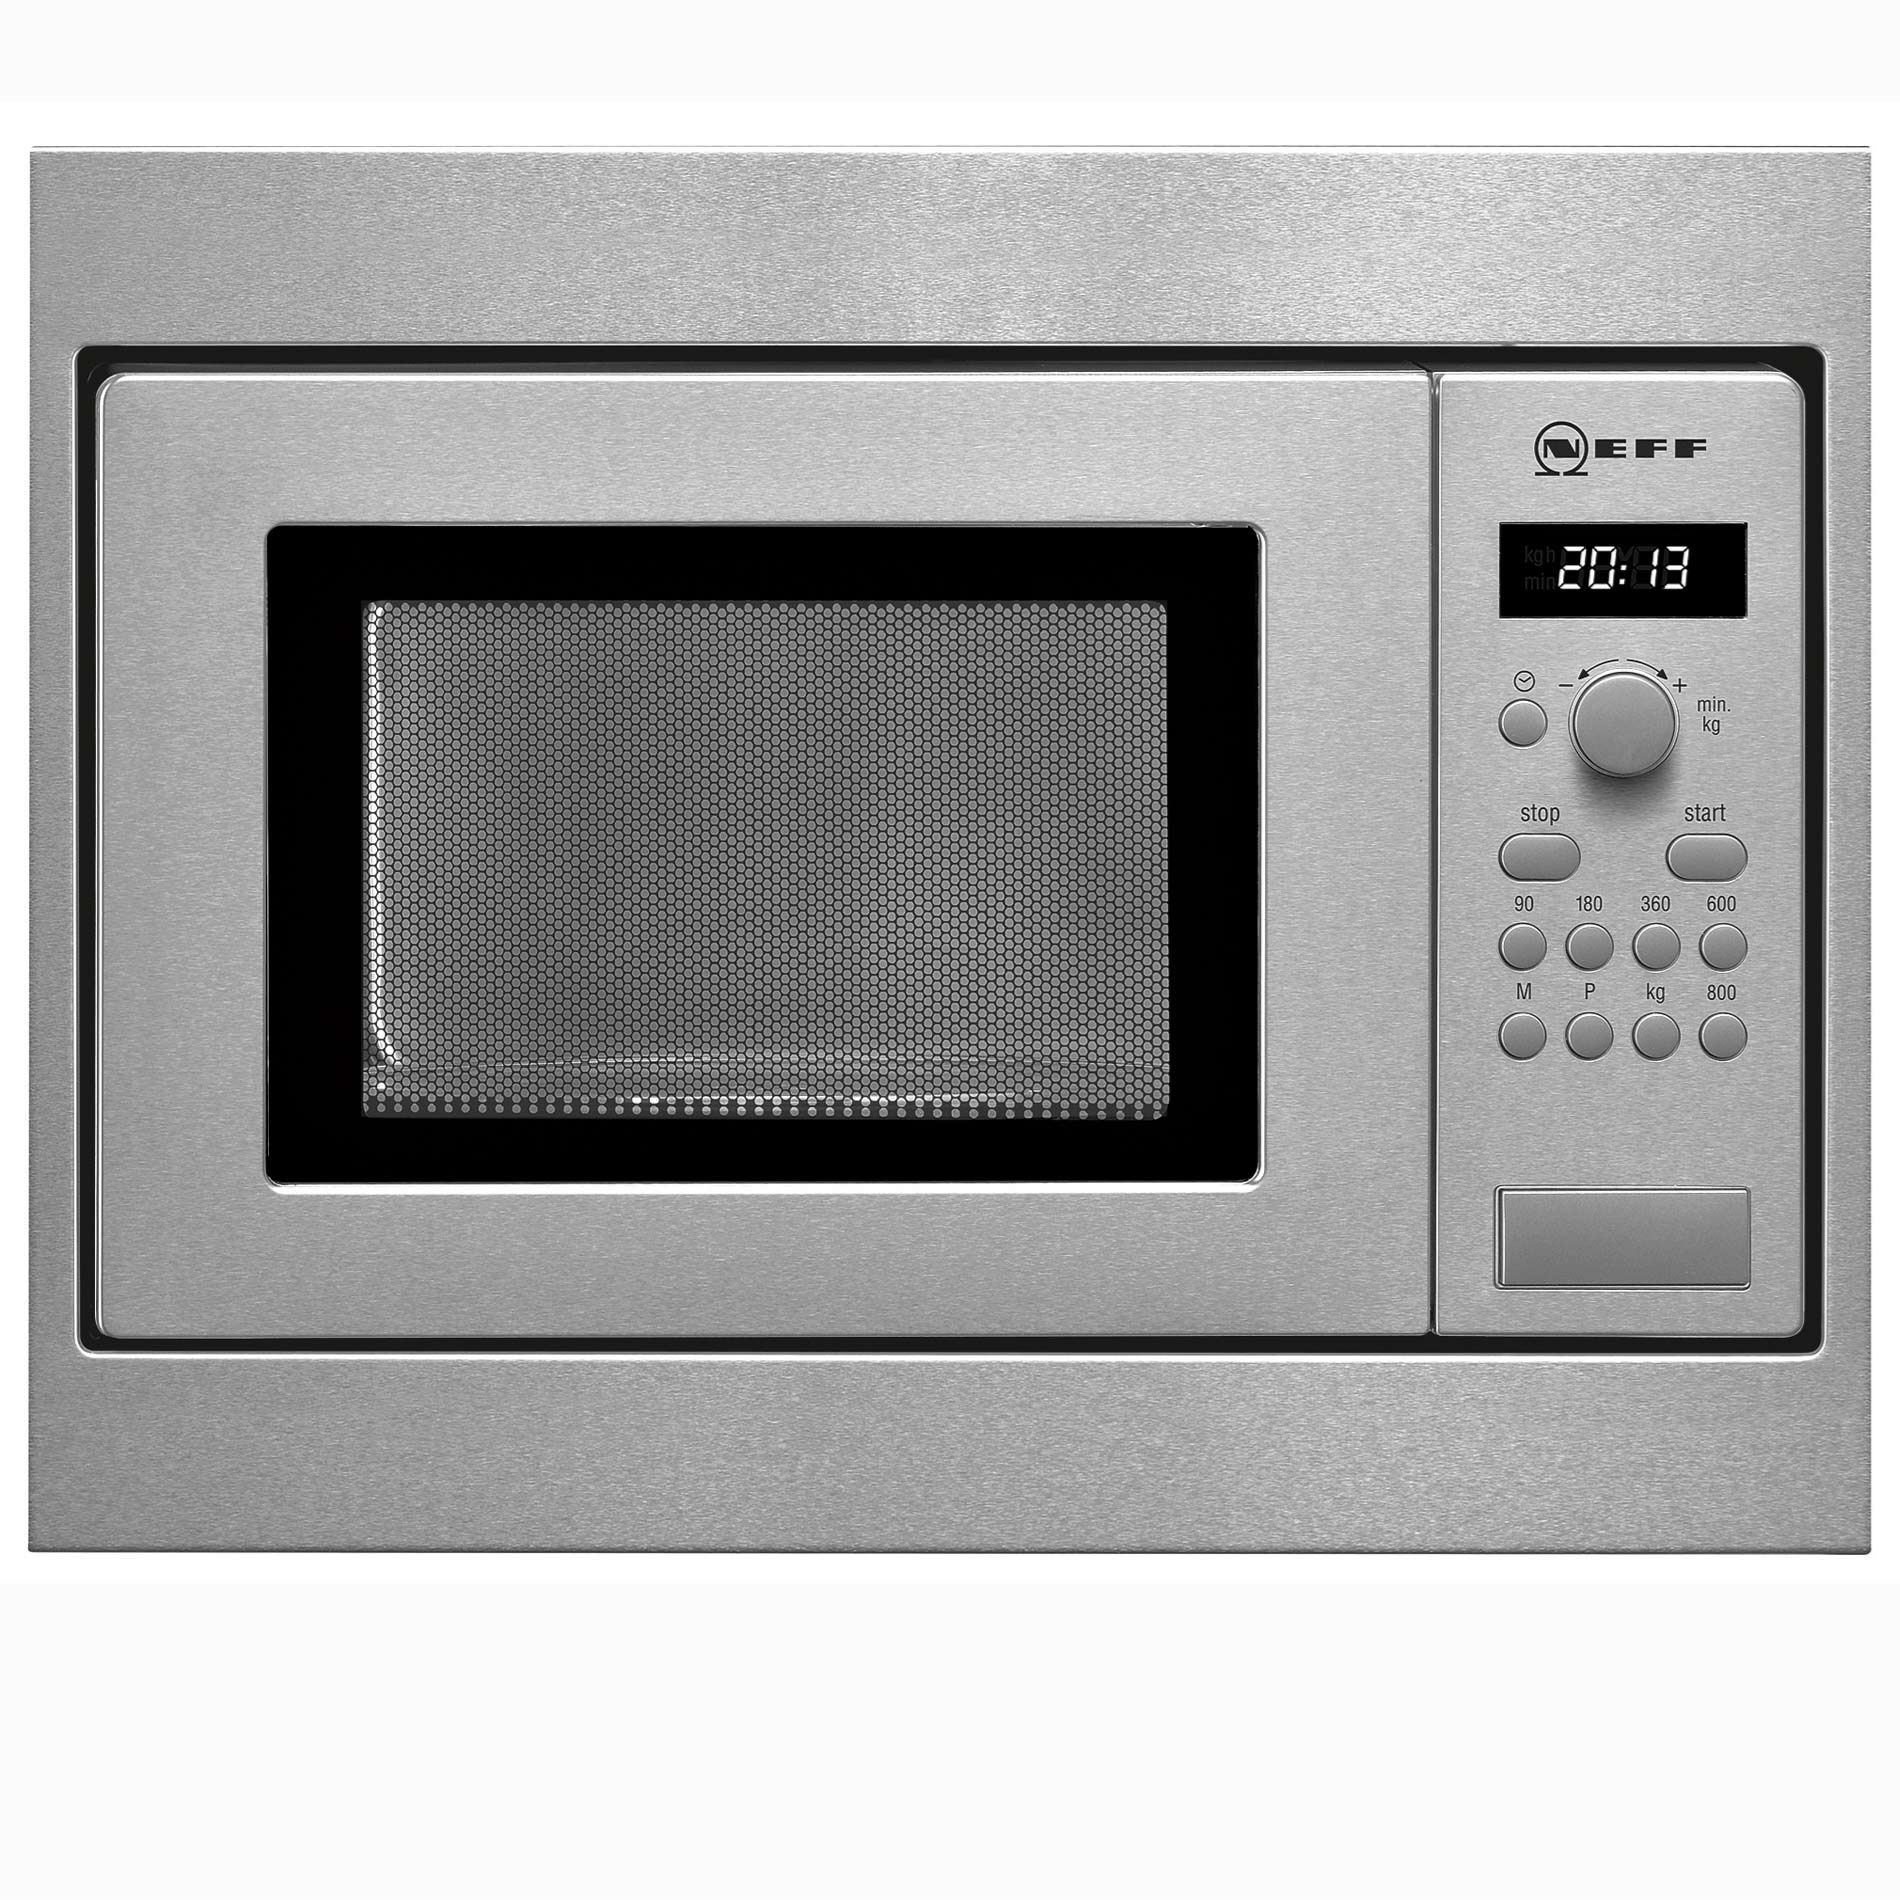 Neff H53w50n3gb Built In Microwave Appliance Source